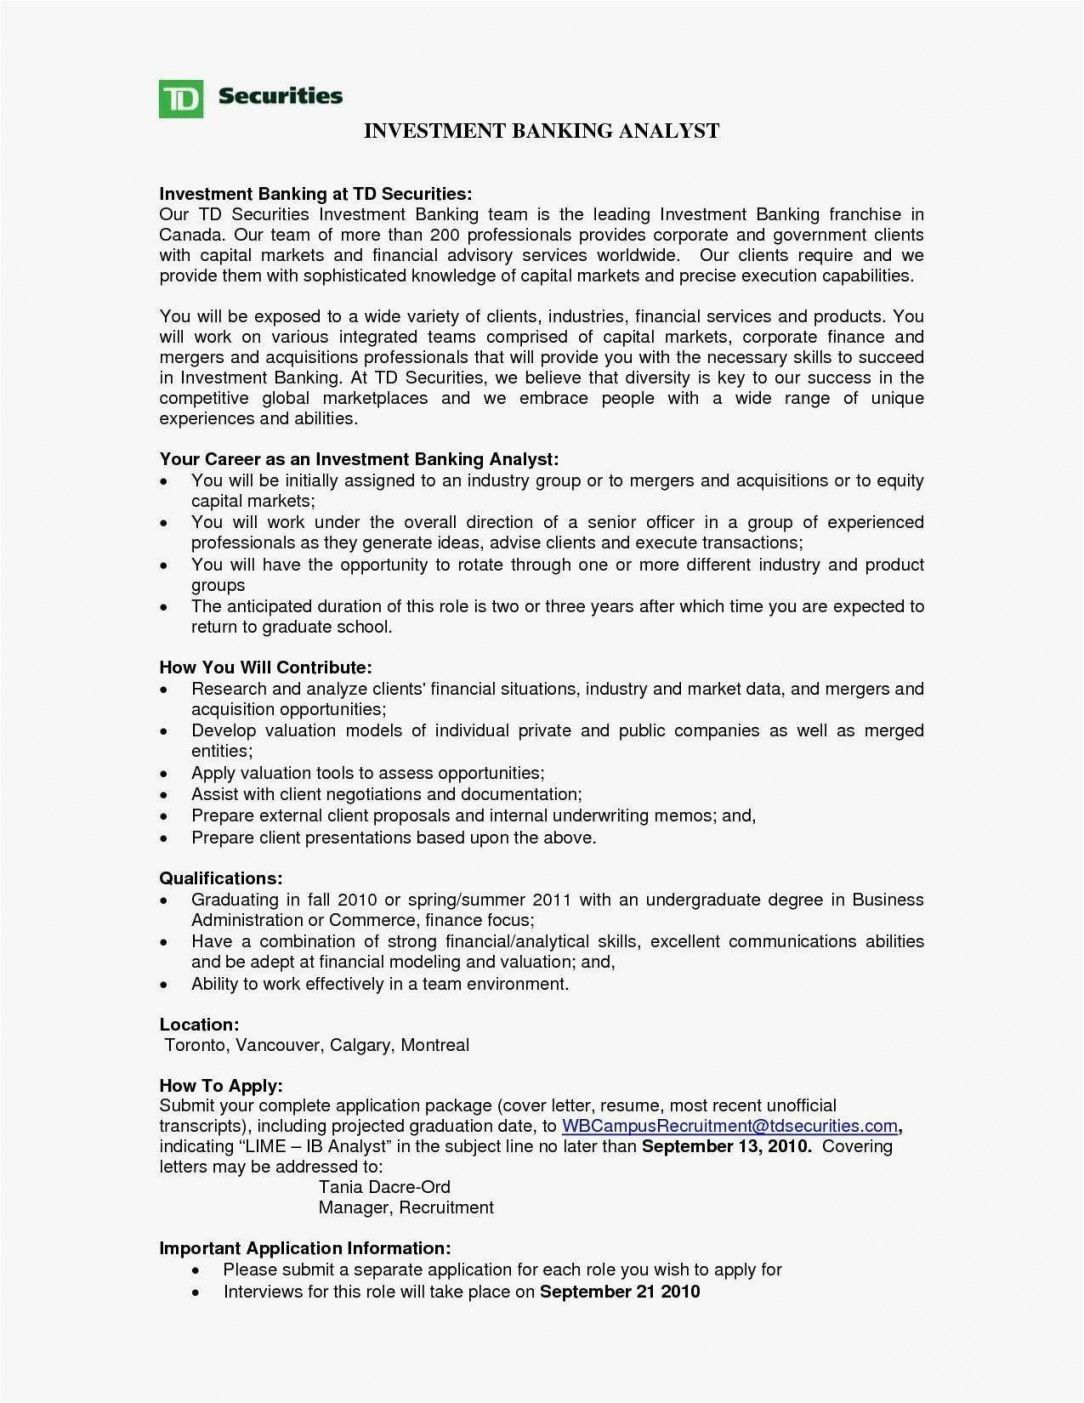 Printable 27 Cover Letter Investment Banking Resume Cover